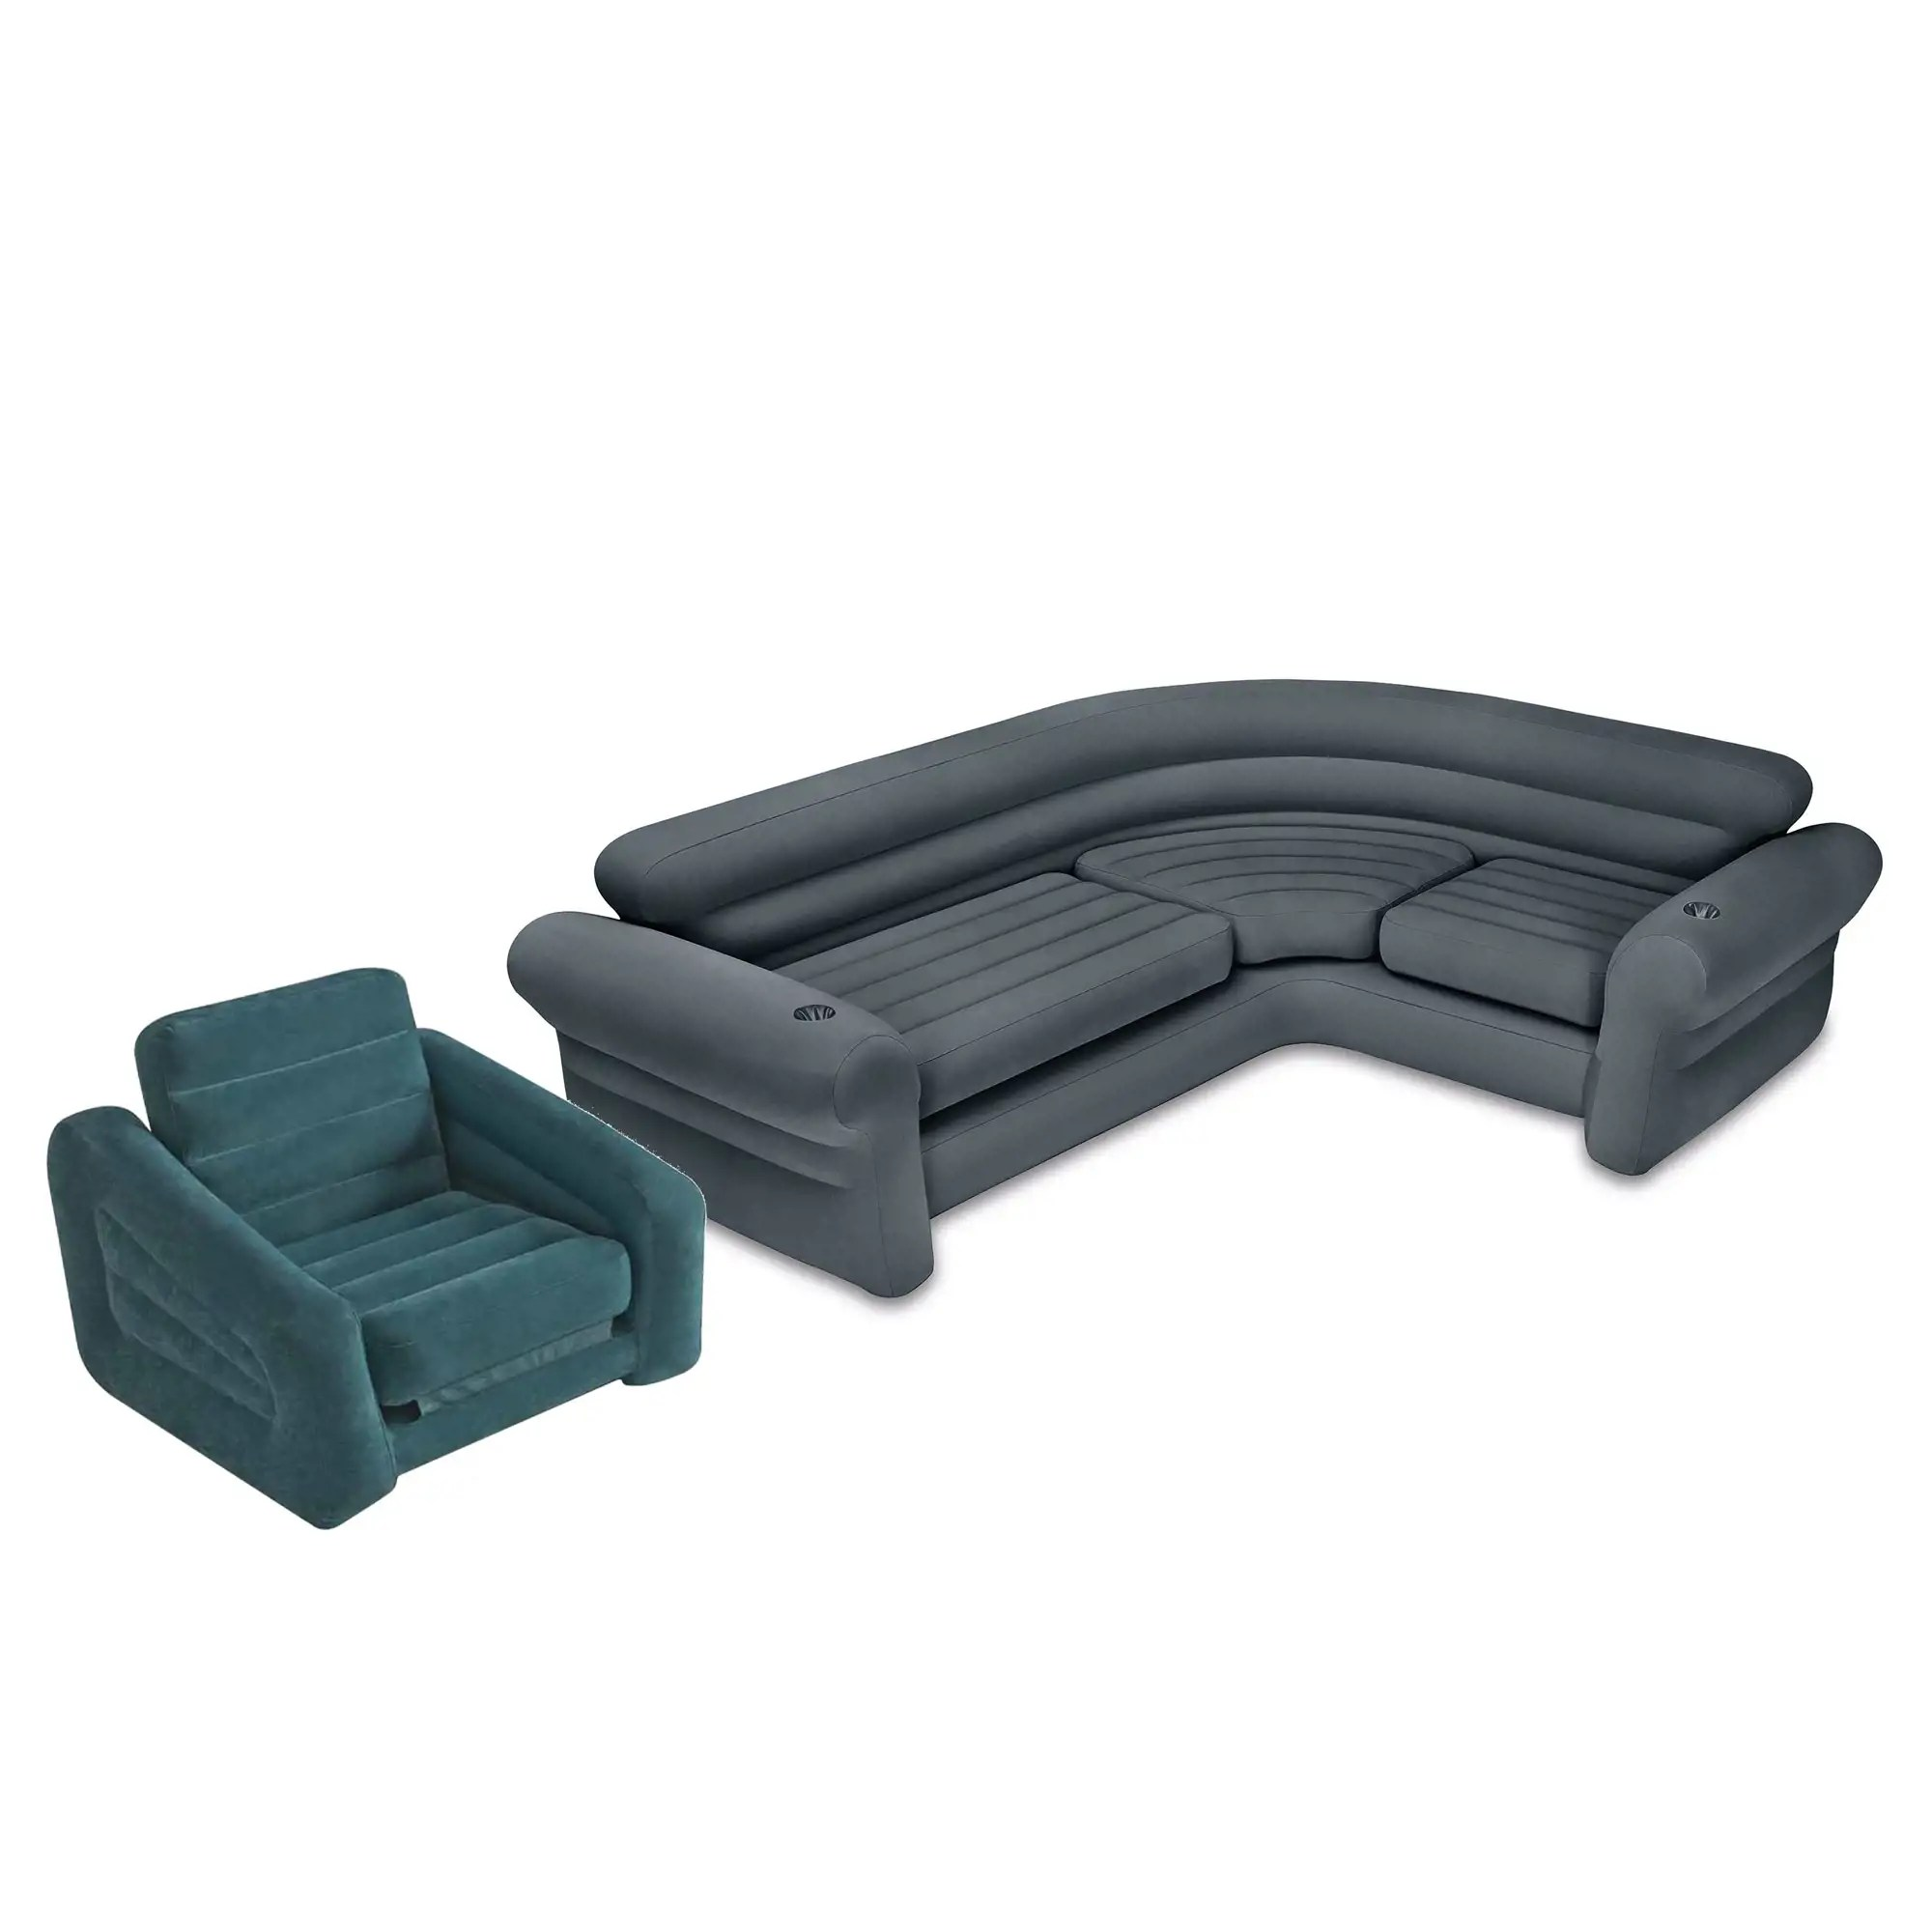 Sofa On Sale Ebay Intex Inflatable Corner Couch Sectional Sofa And Pull Out Twin Air Bed Sleeper